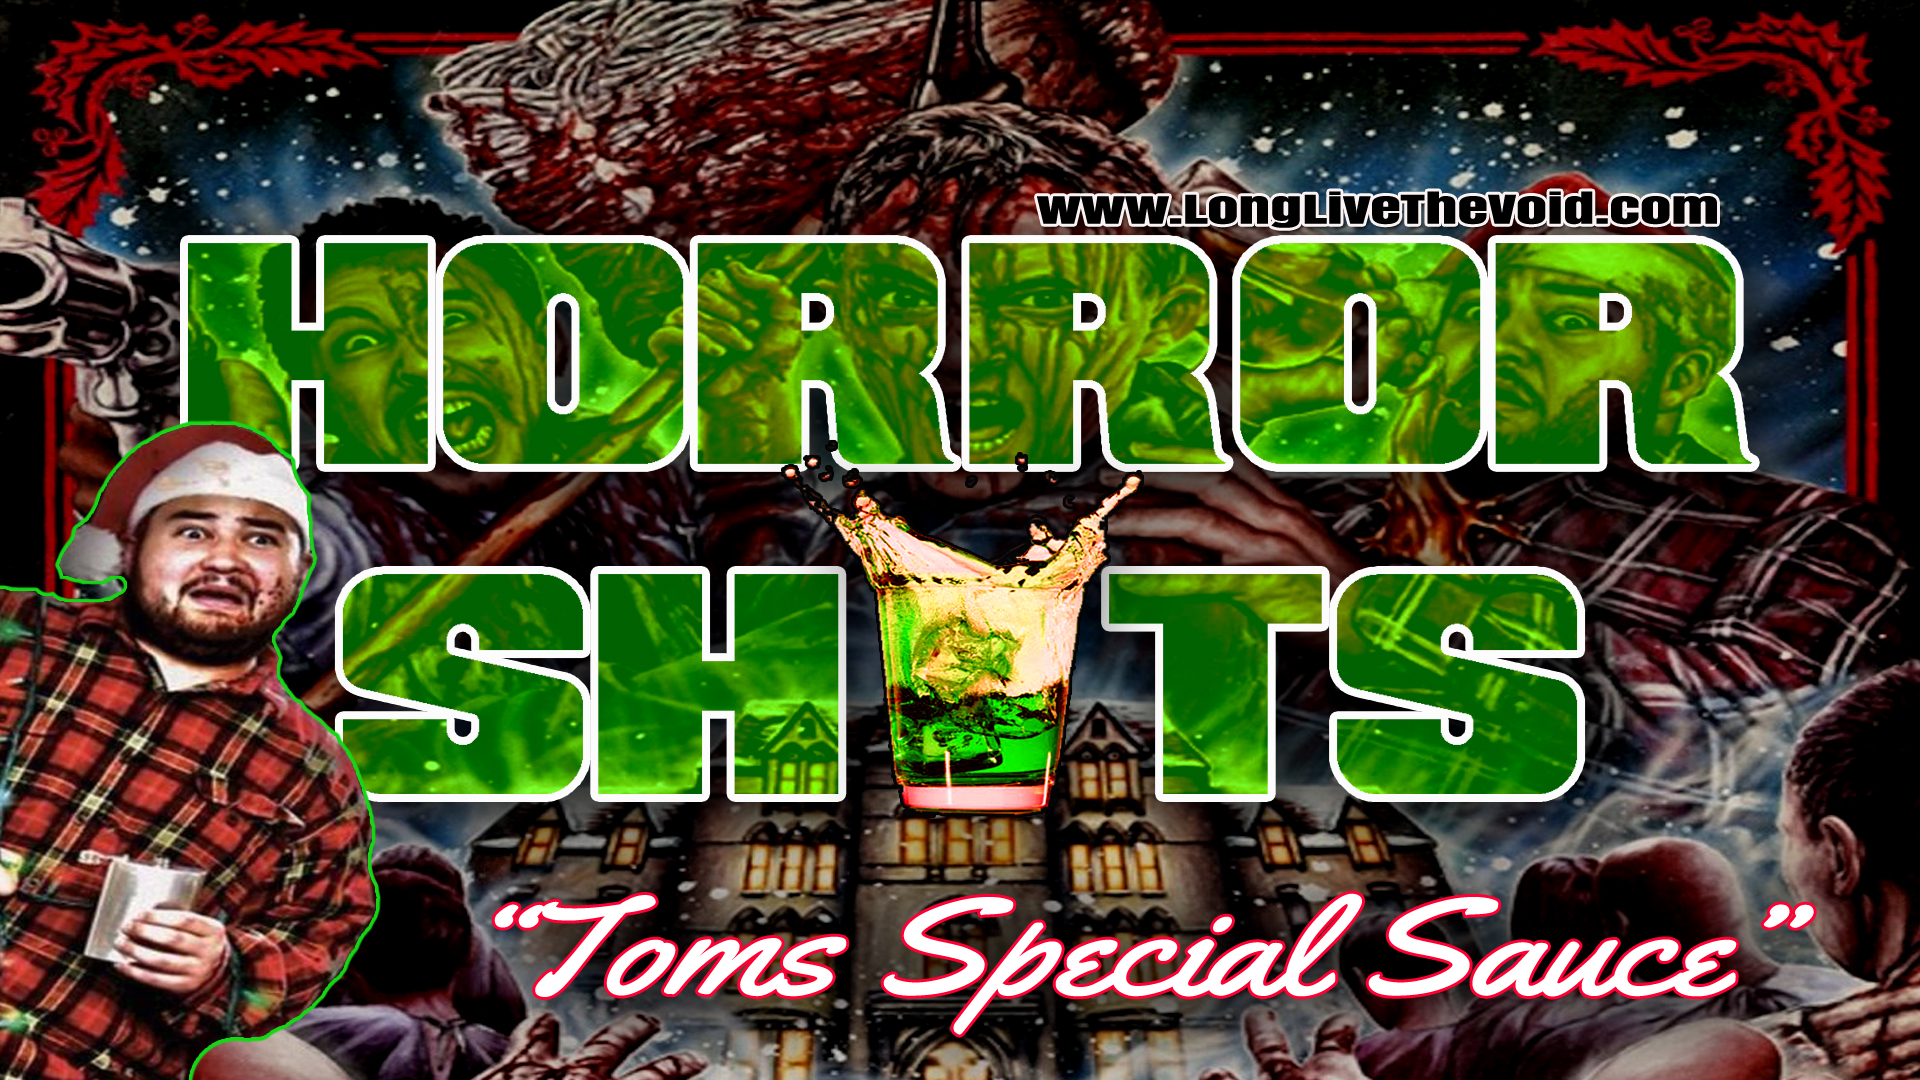 """Try our #horrorshot we made dedicated to """"A Cadaver Christmas"""""""